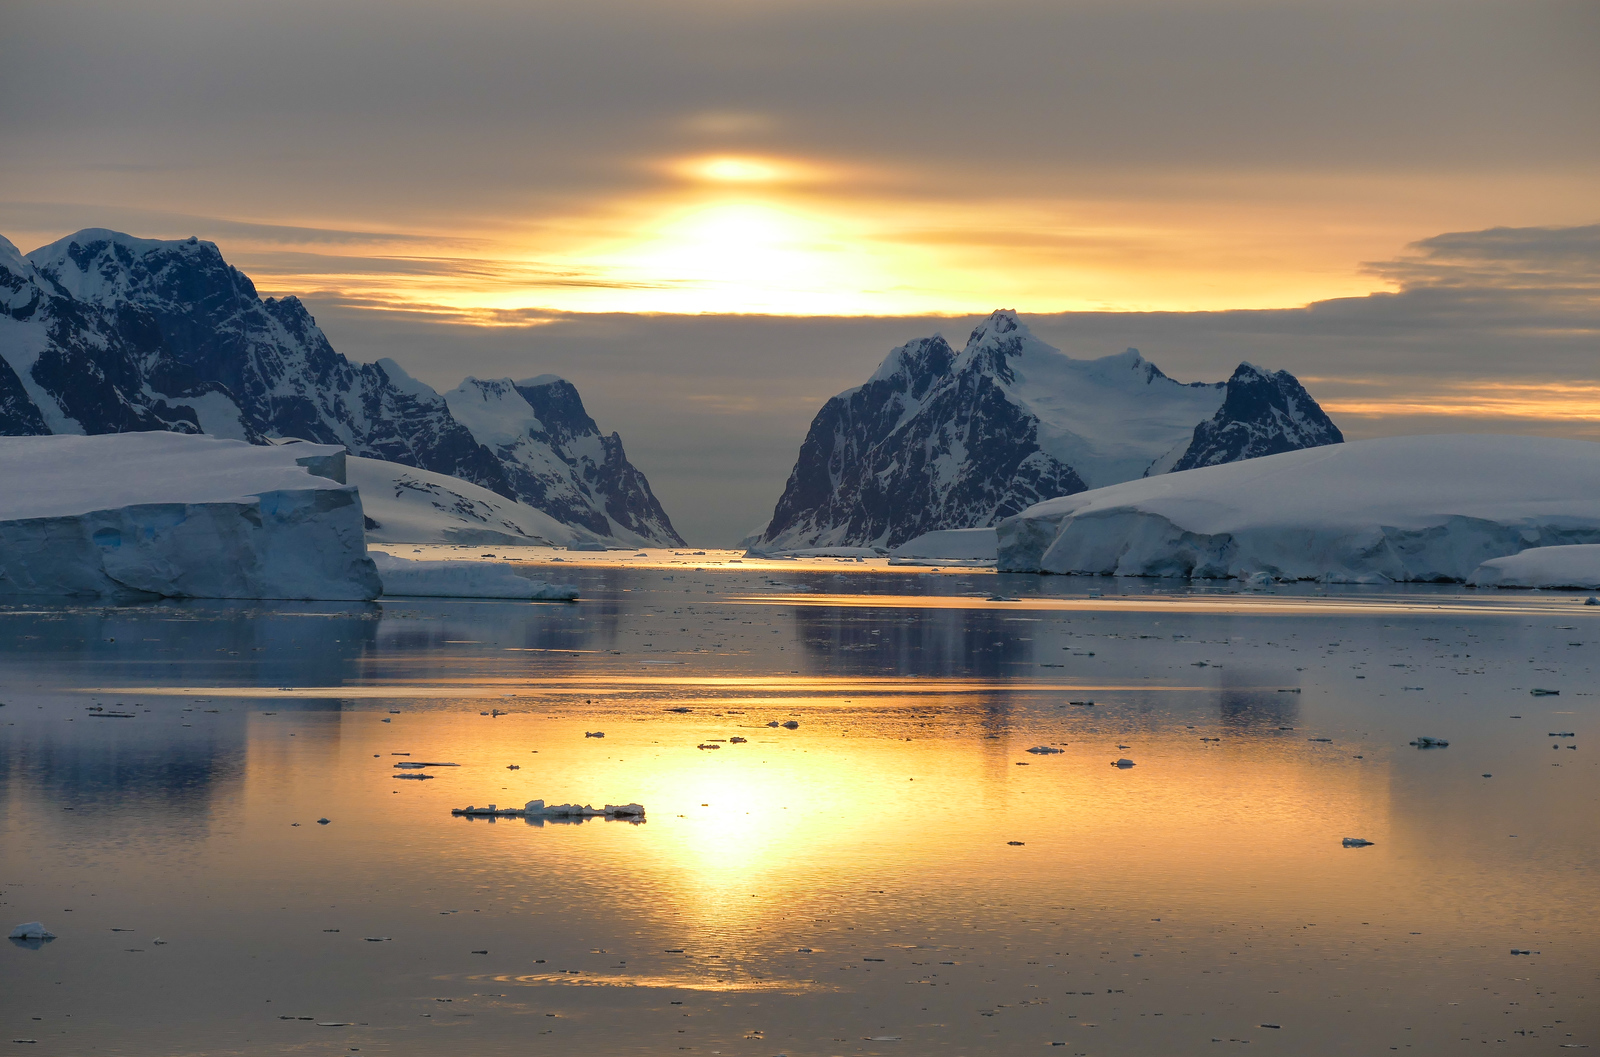 Sunset in between snow-covered mountains taken from a boat in an Antarctica channel.